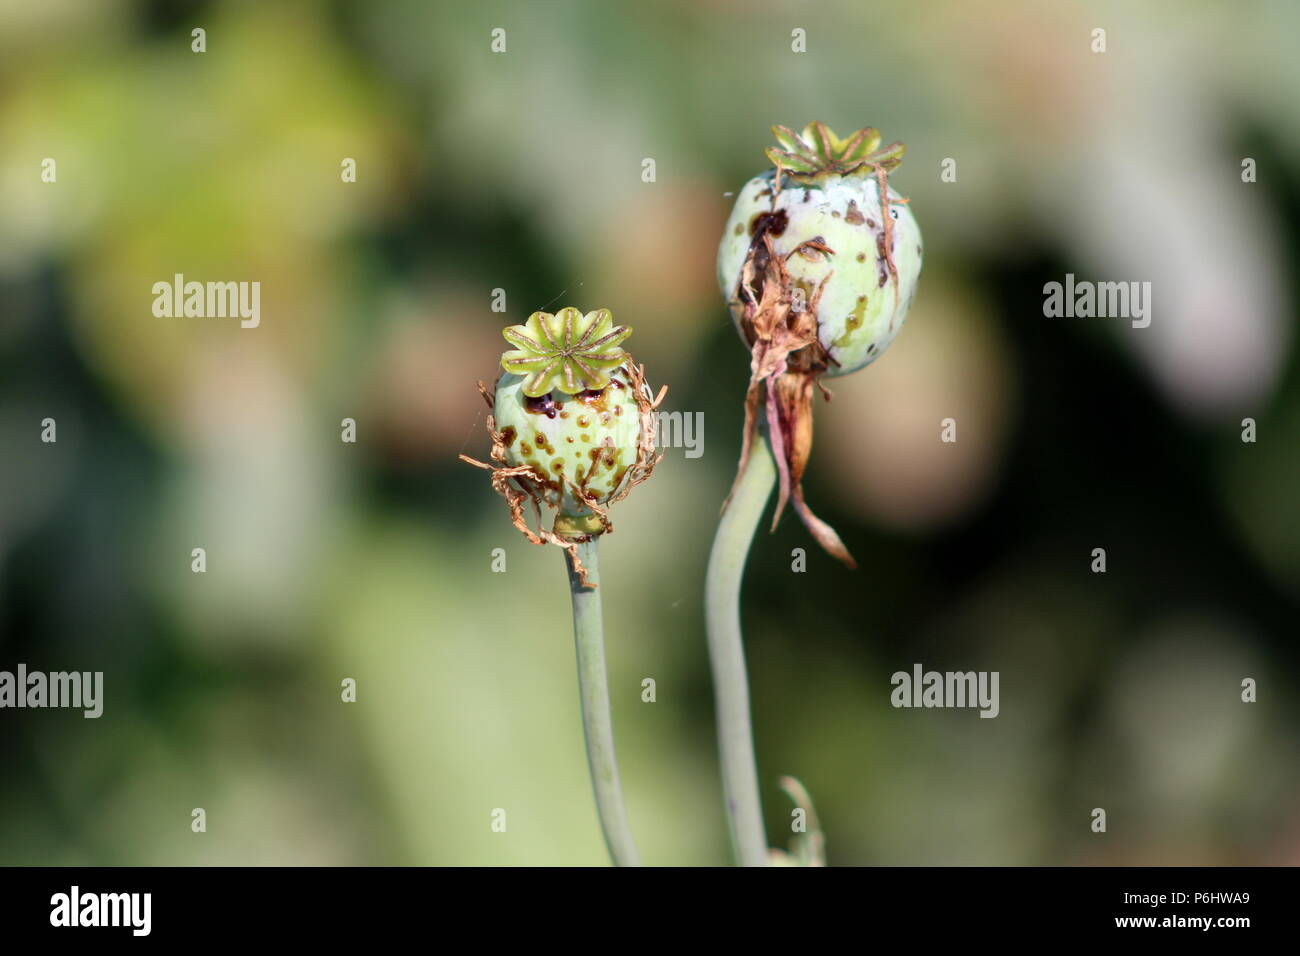 Opium poppy or Papaver somniferum or Breadseed poppy flower buds with dried leaves and cobweb in local garden on warm sunny day - Stock Image